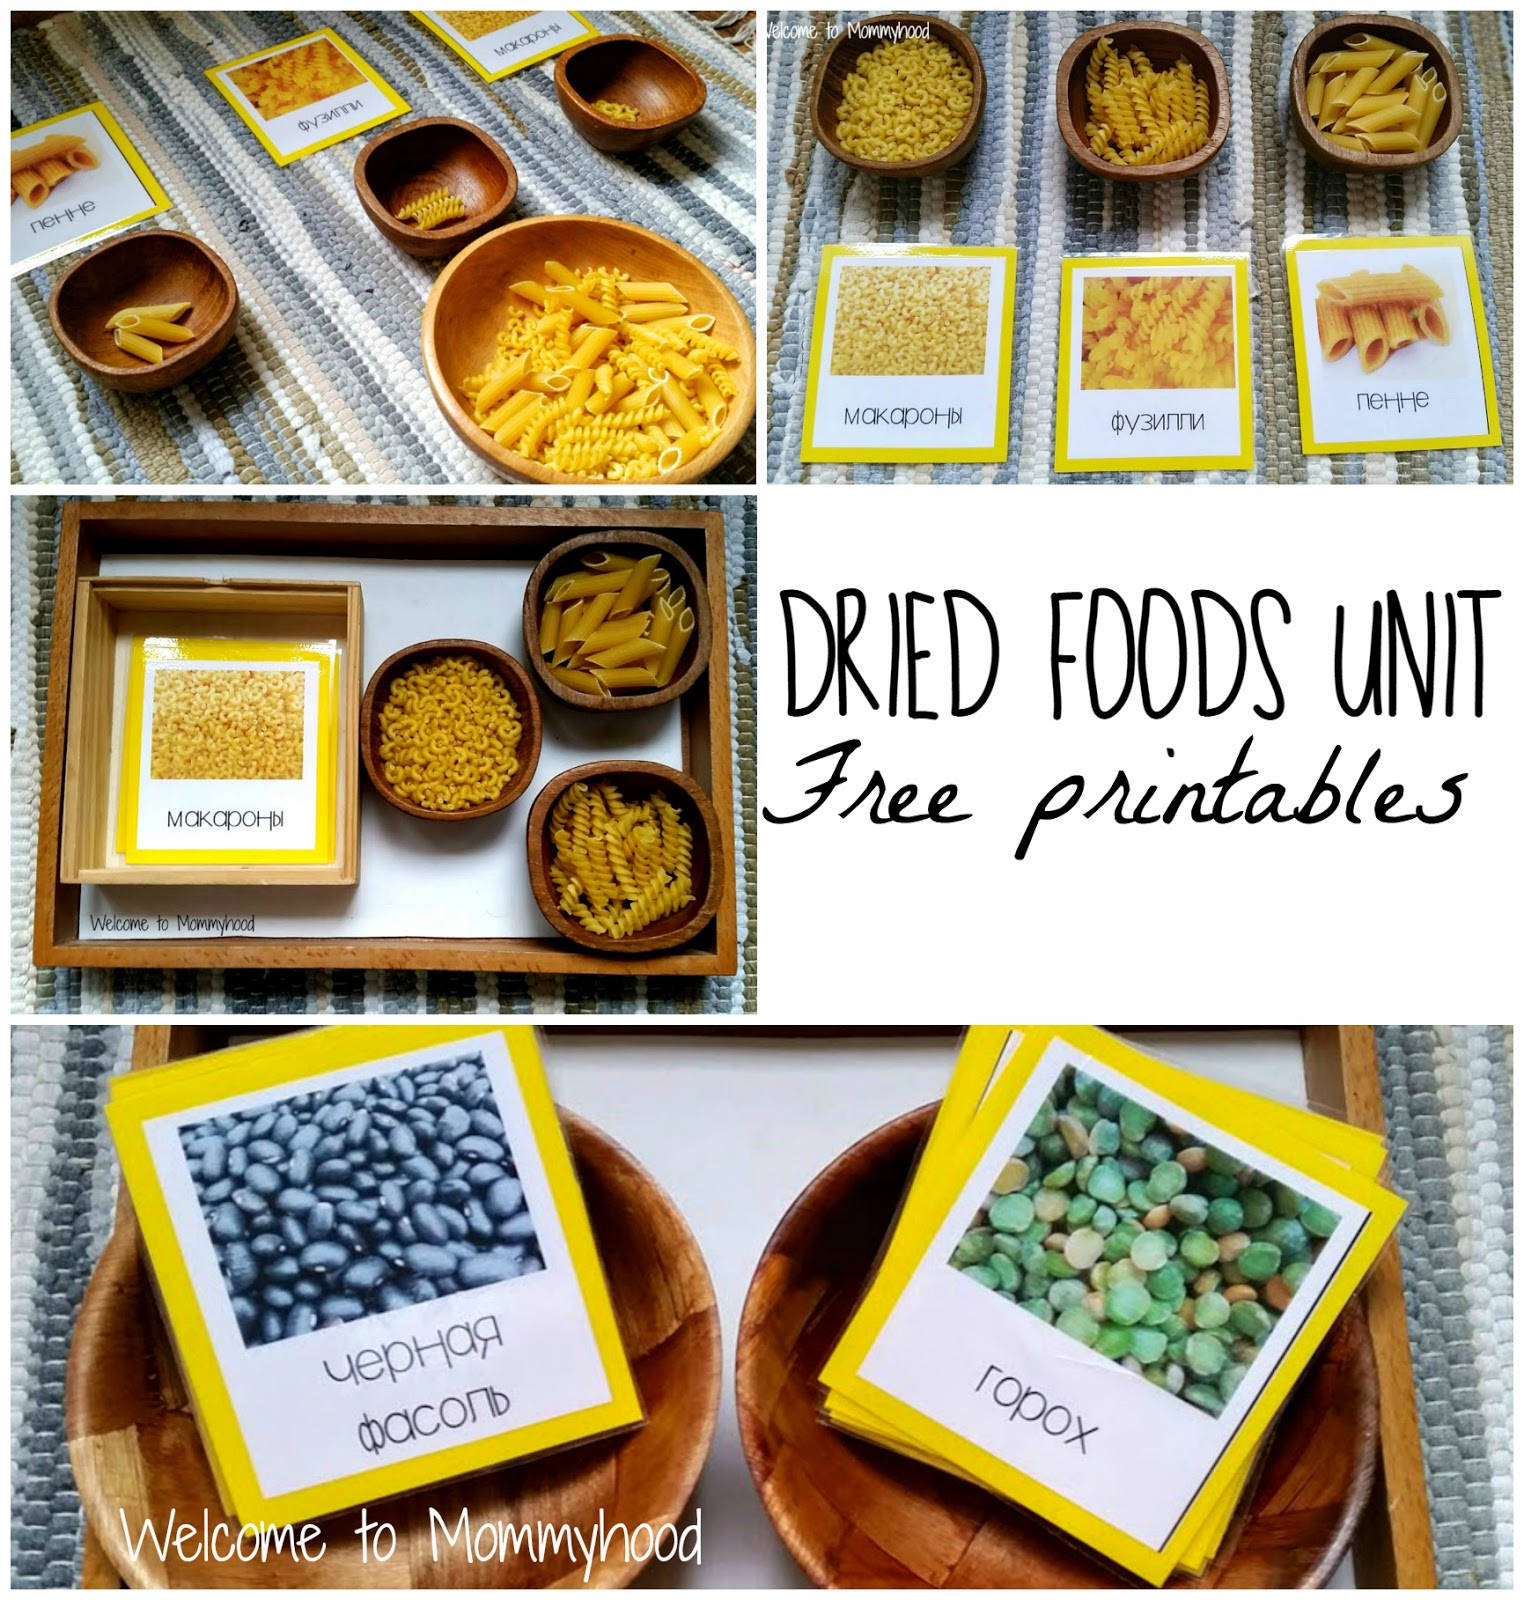 Grains Pasta Beans And More Free Printables